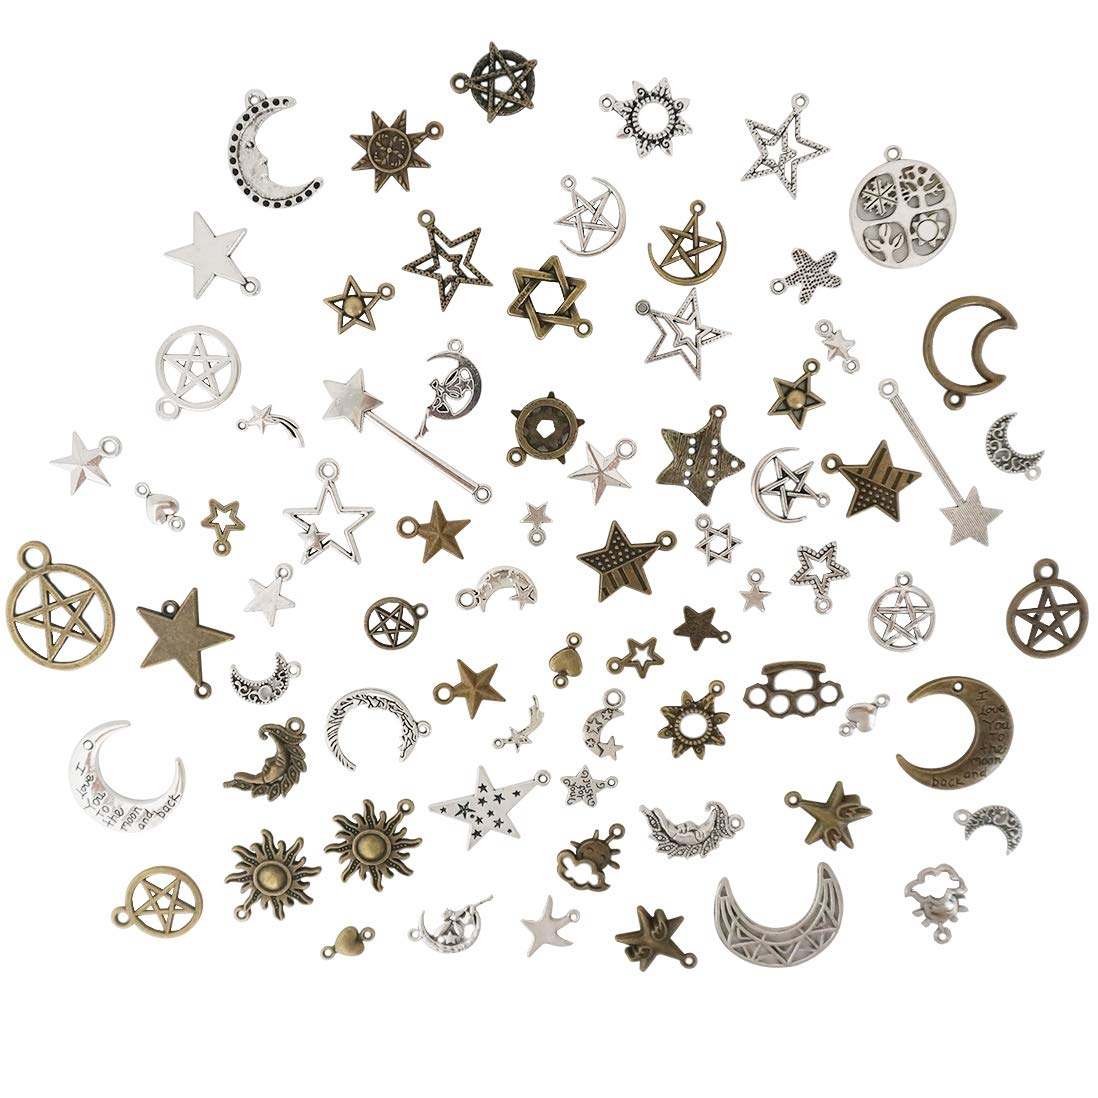 Misscrafts Mixed Moon Sun Stars Pendants, Celestial Charms, Bulk Pagan Wicca Wiccan Charms, Bracelet Charms, UK Jewelry Making Supplies